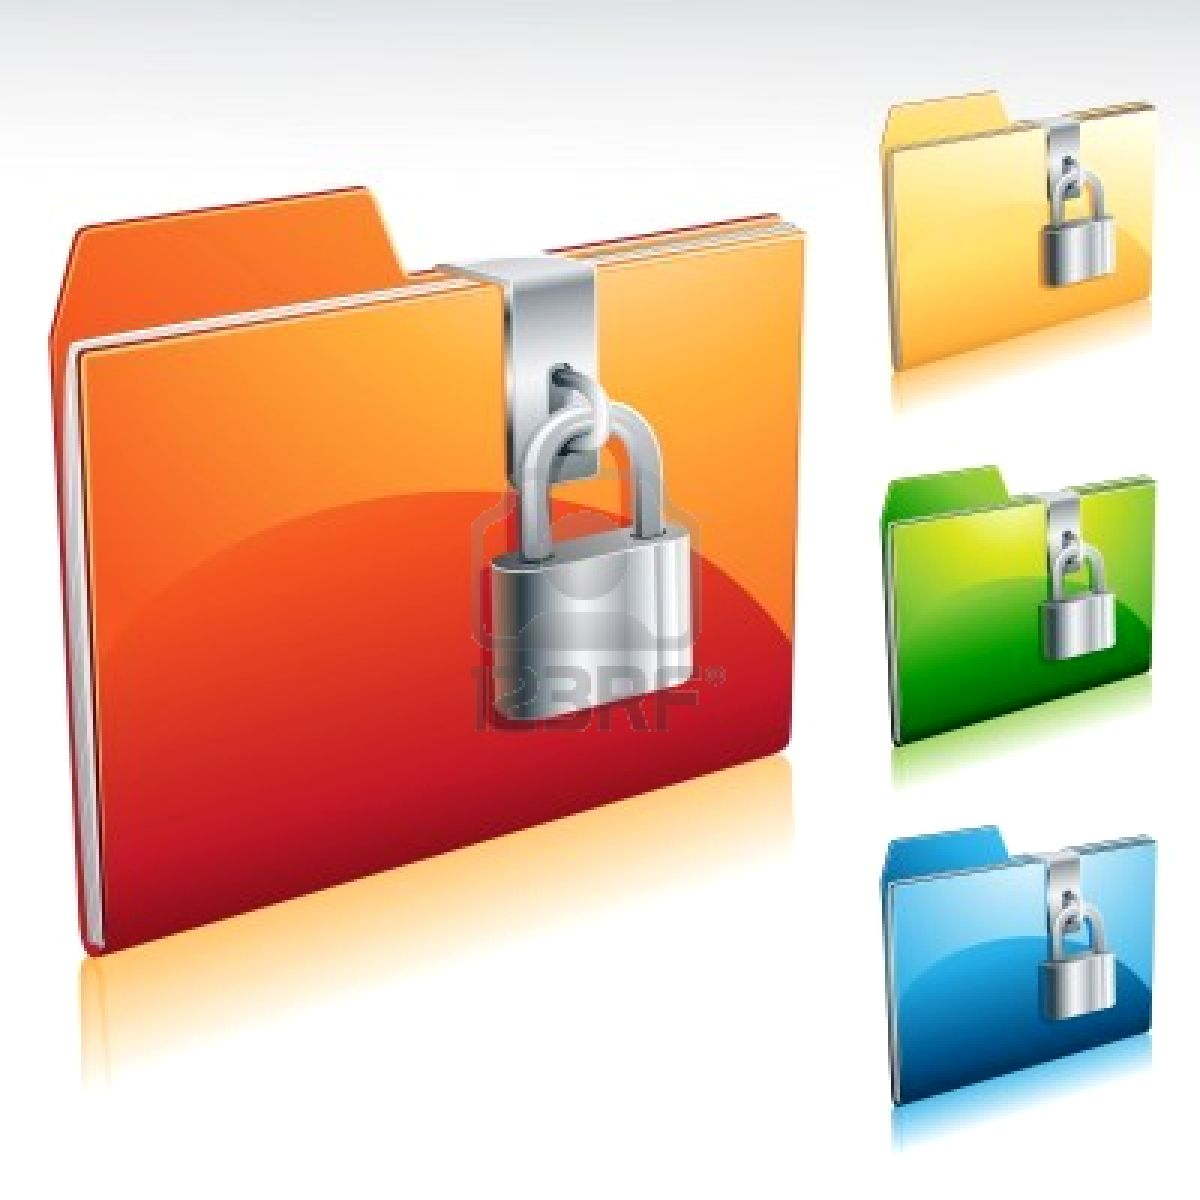 16 Folder Lock Icon On Windows Images